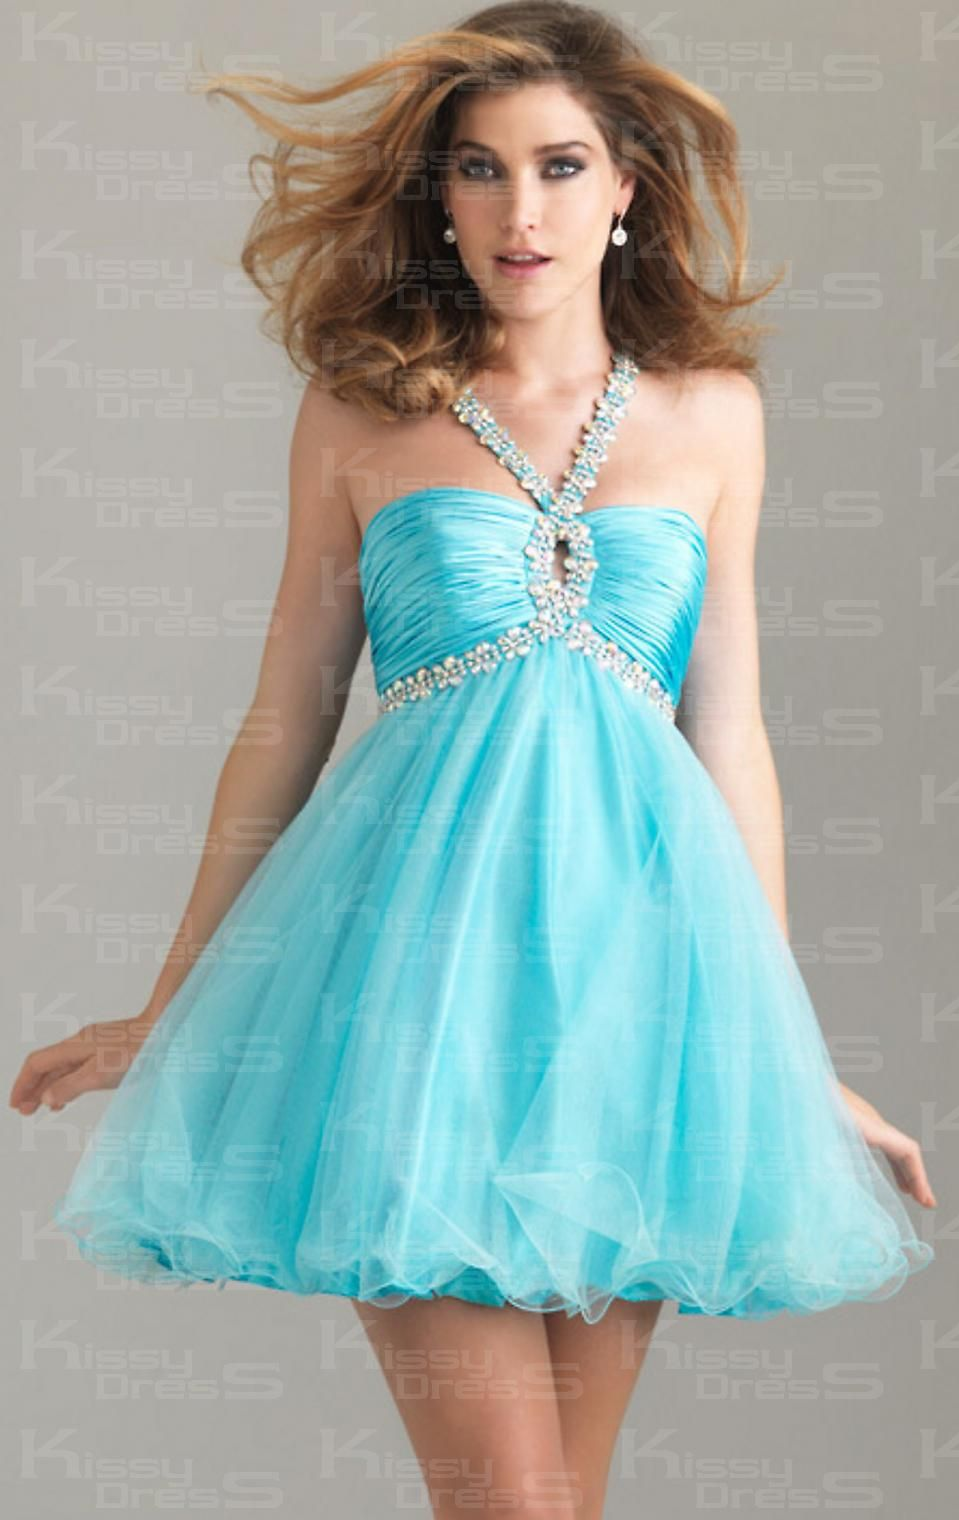 organza-a-line-straps-sleeveless-short-prom-dress-5132-6.jpg (959 ...